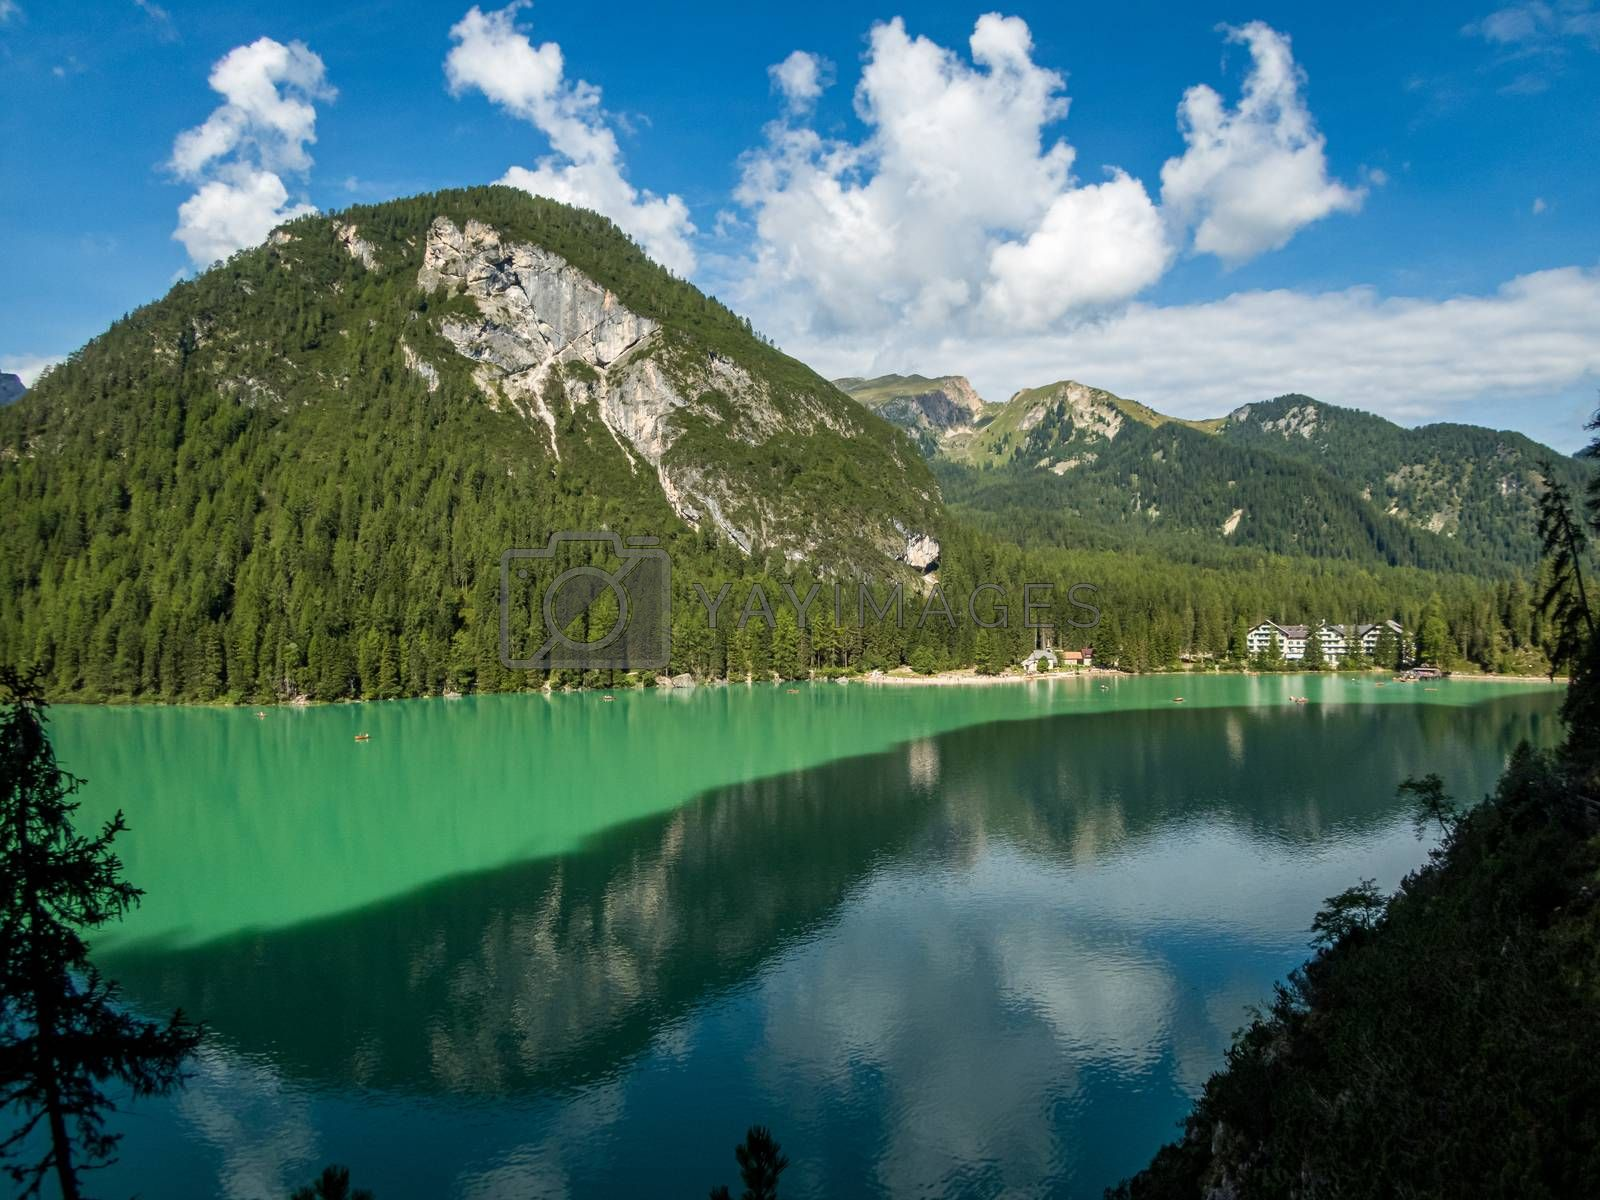 Pragser Wildsee in the Dolomites, South Tyrol by mindscapephotos